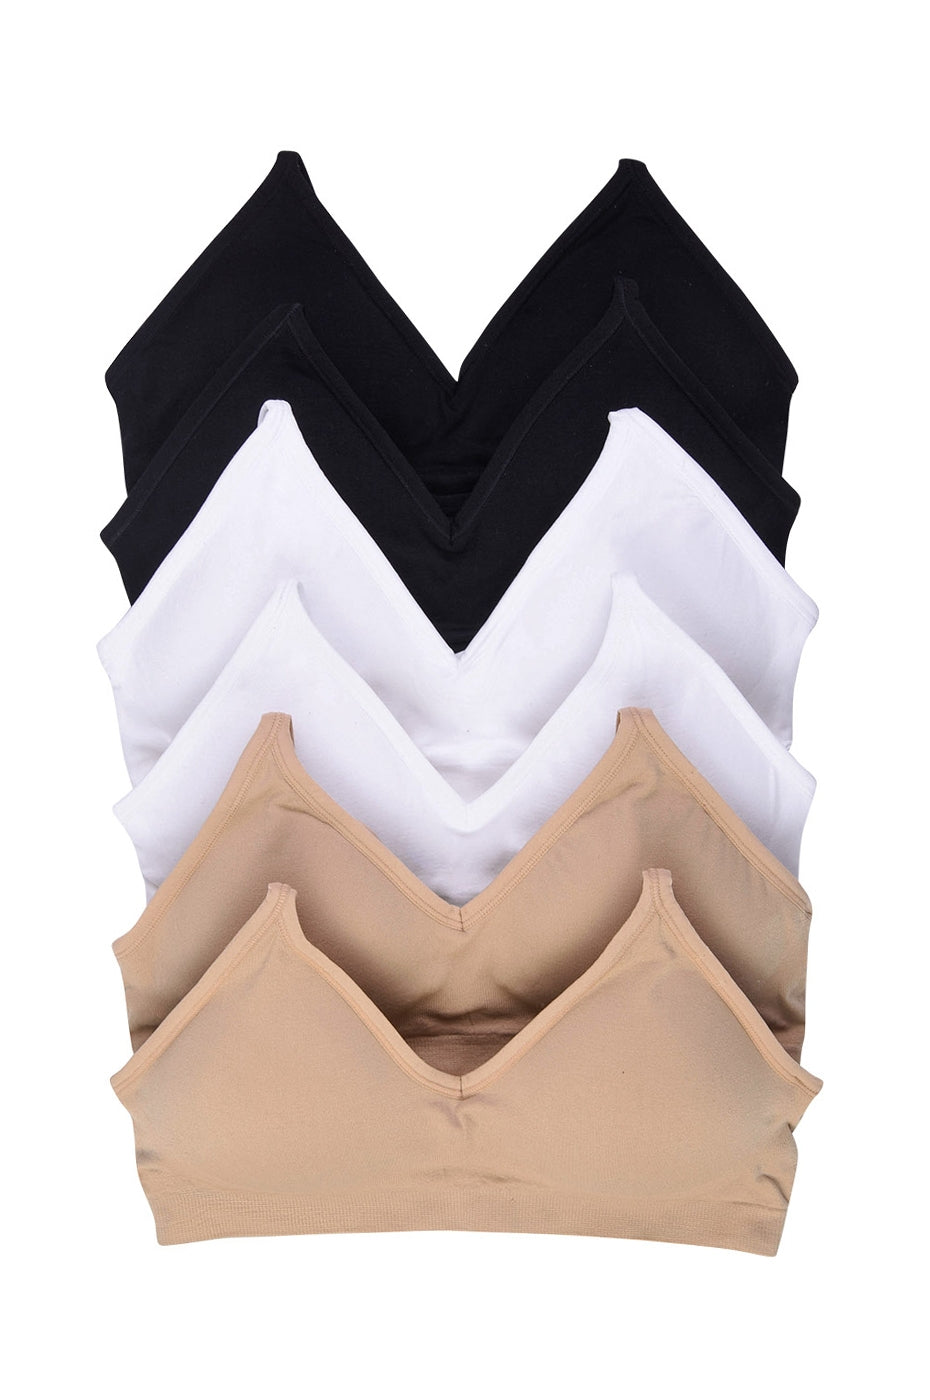 PACK OF 6 | Sofra Women's Seamless Sports Bra (BR0160SP)